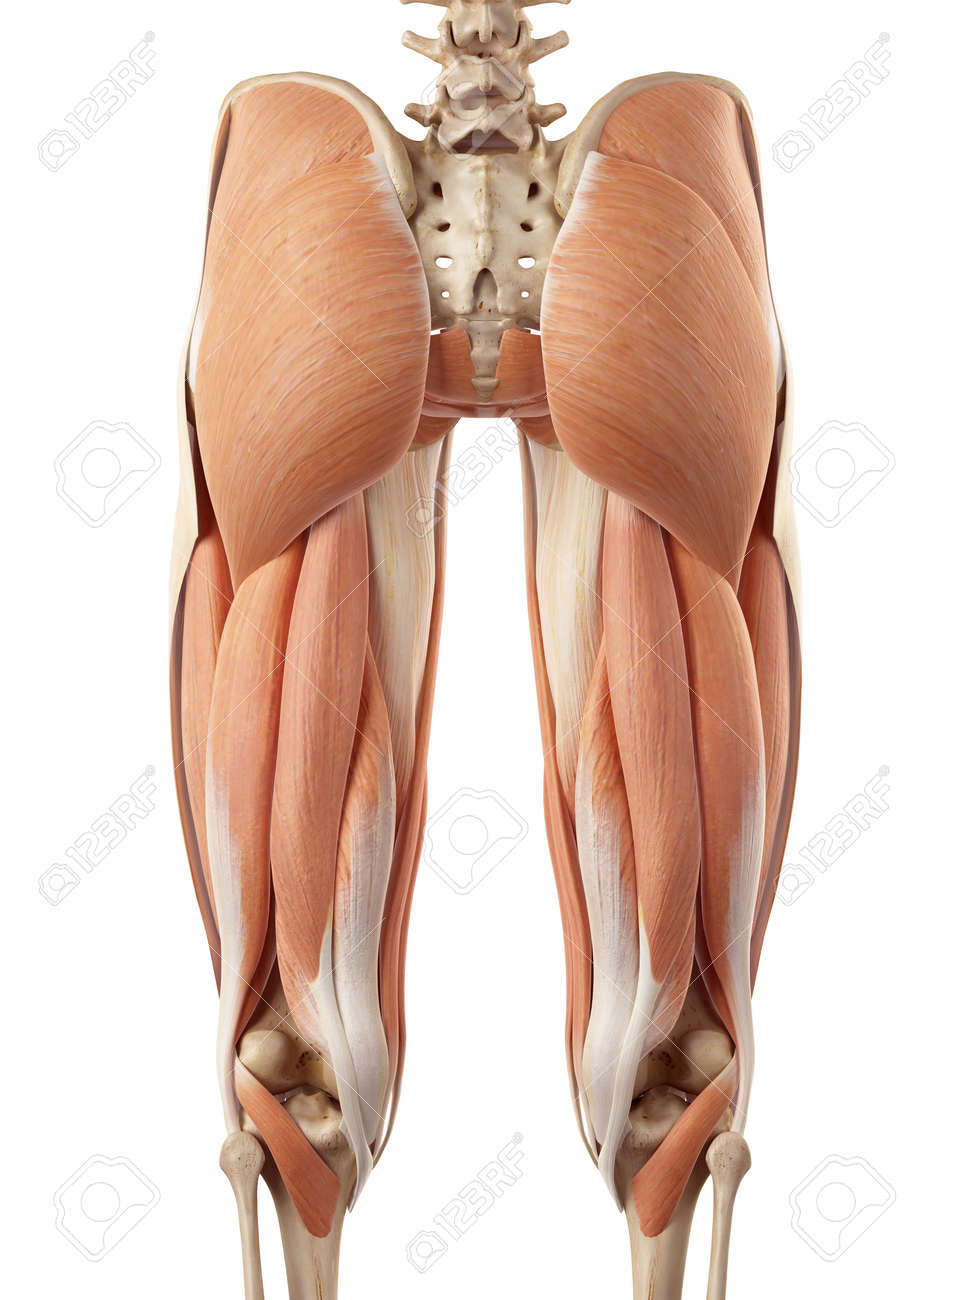 Medical Accurate Illustration Of The Upper Leg Muscles Stock Photo